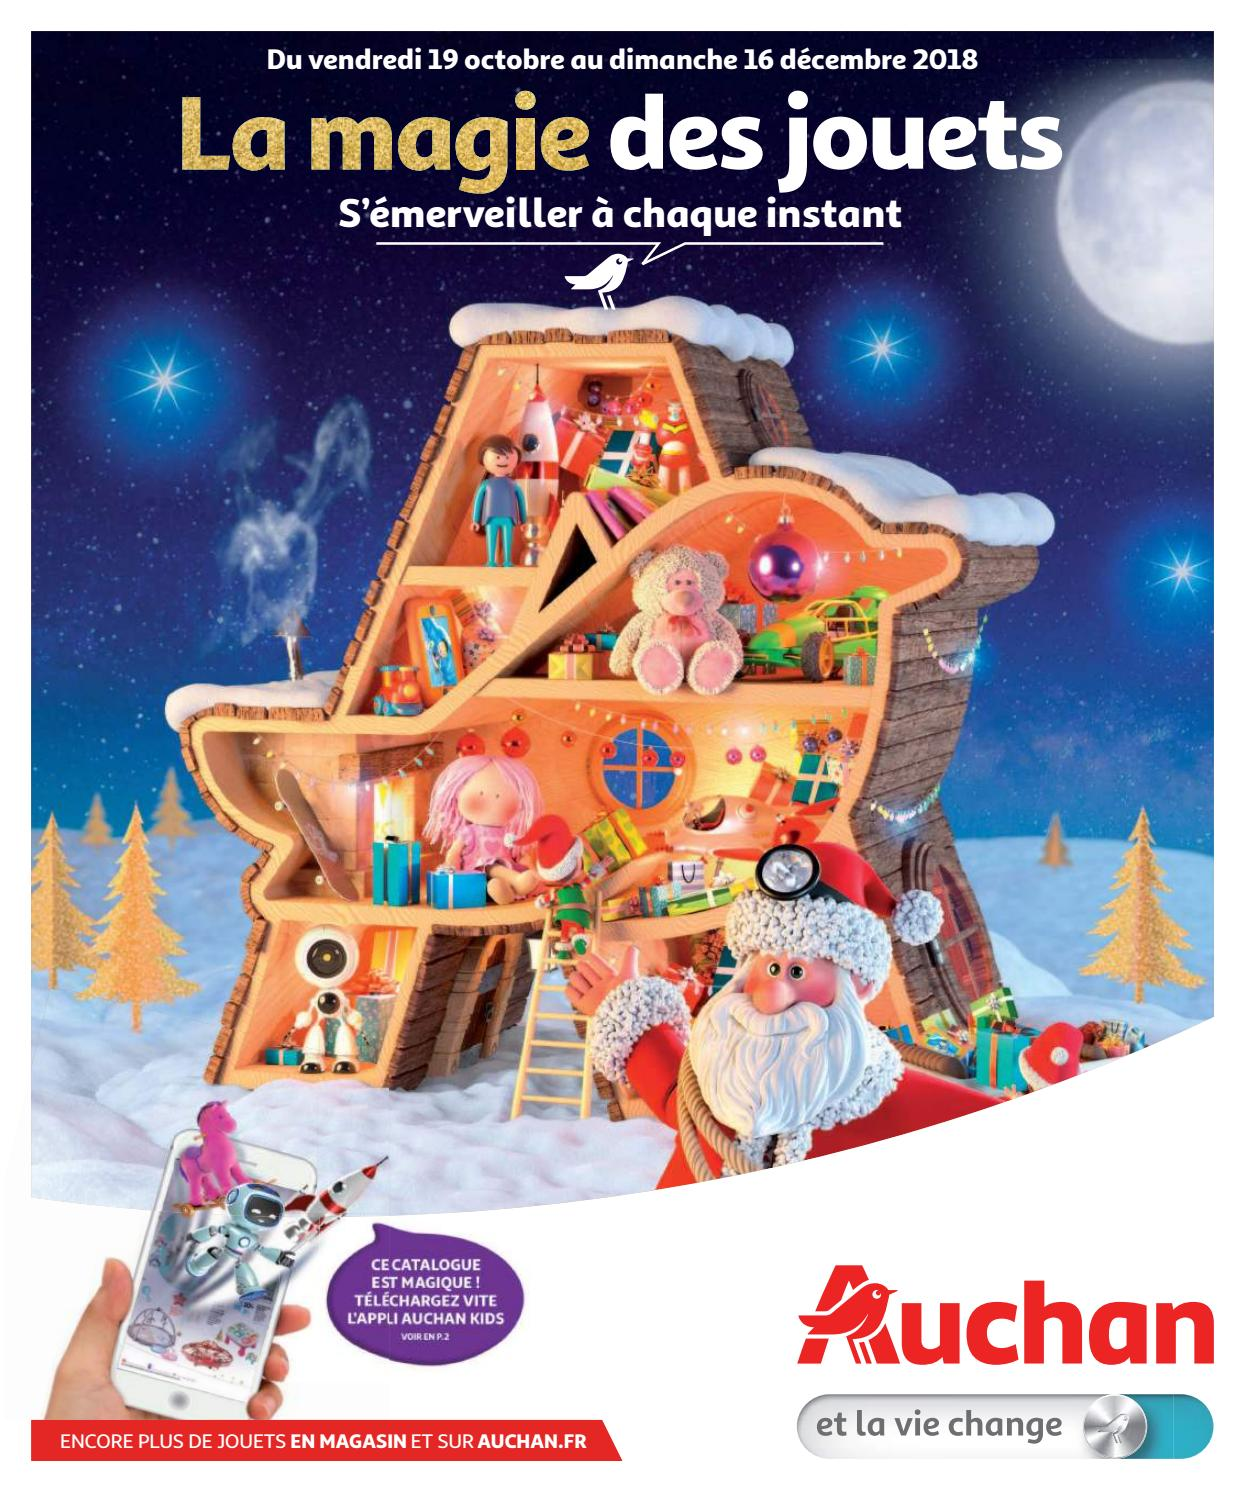 Magasin Jouet Le Mans Catalogue Jouets Noël 2018 Auchan By Yvernault Issuu